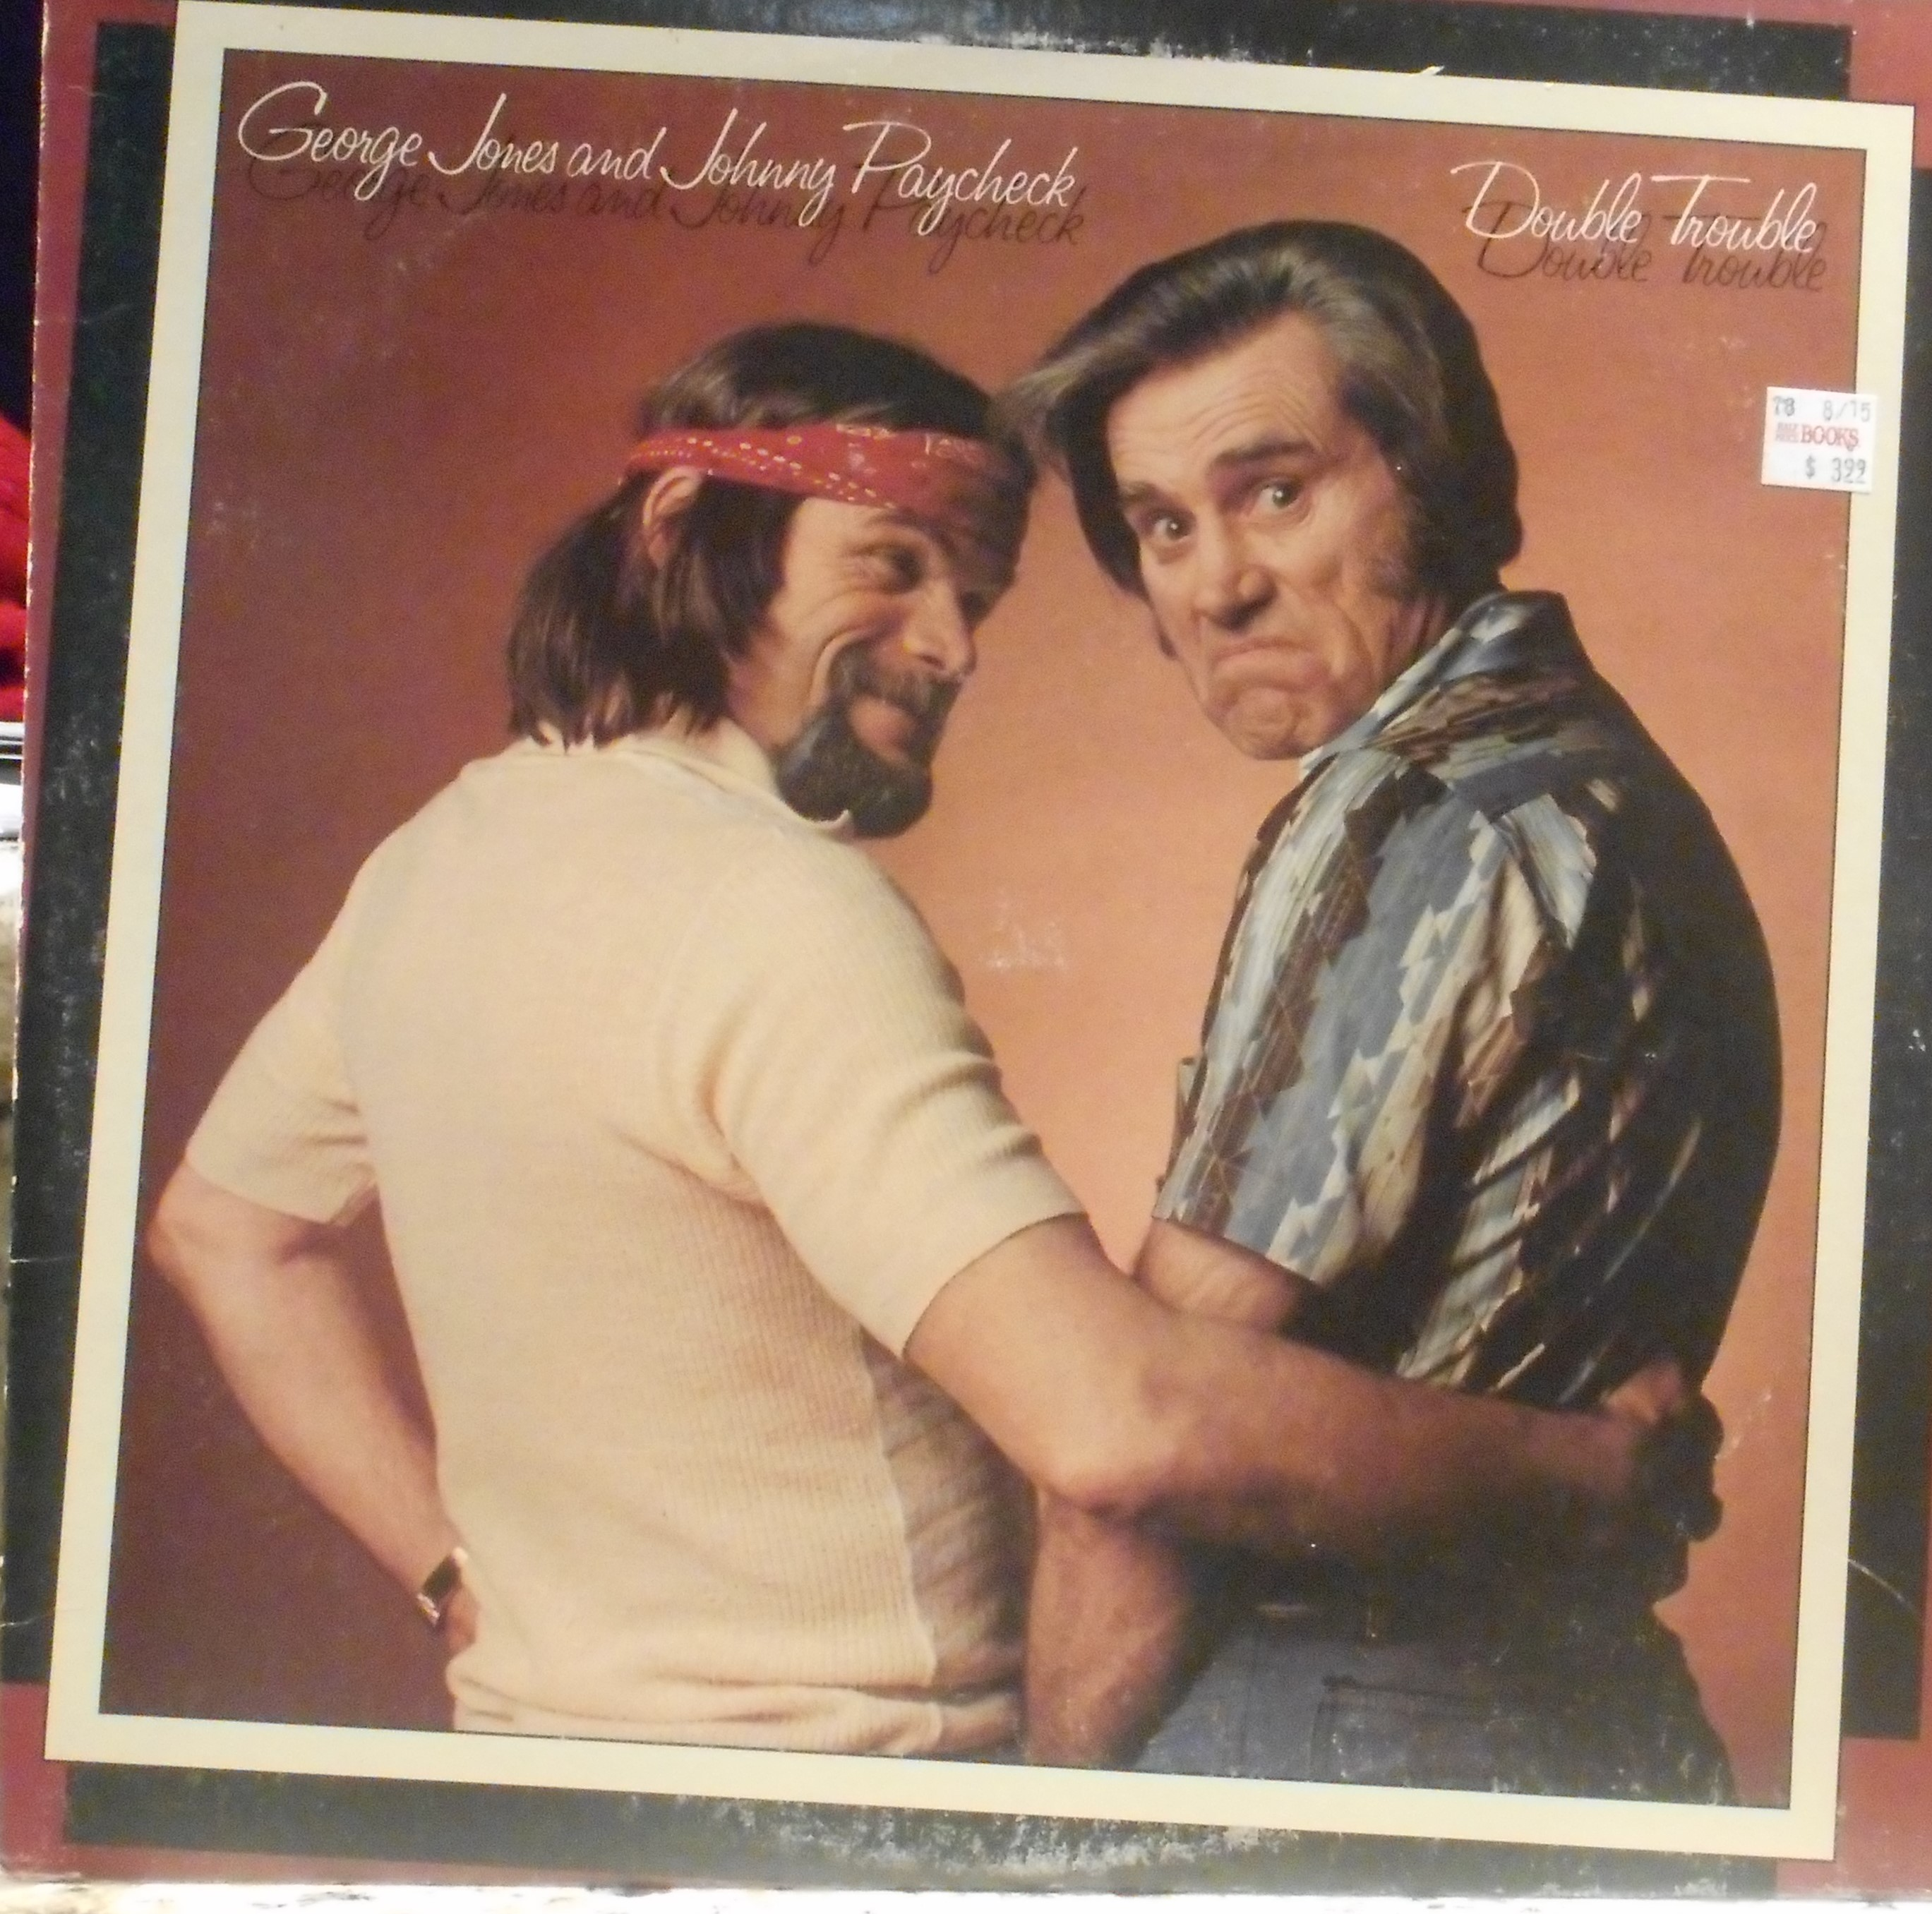 Johnny Paycheck And George Jones Double Trouble Donkey Show